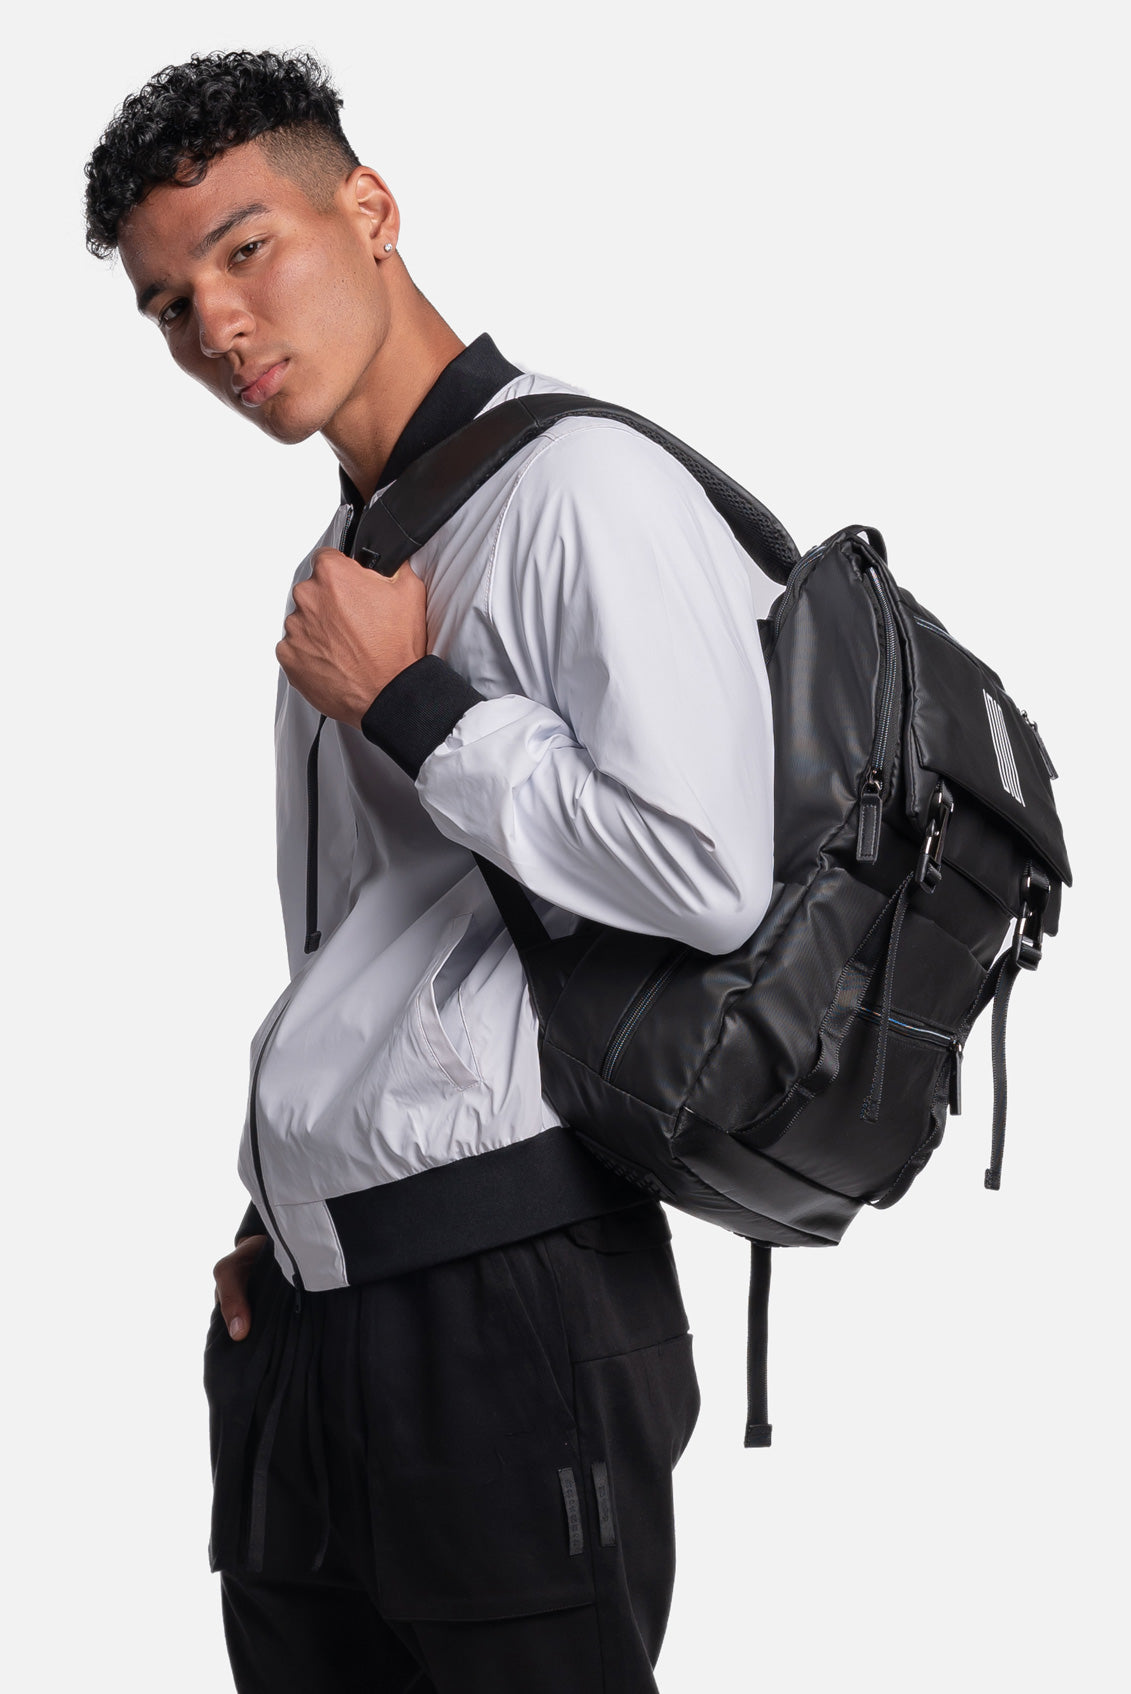 wolfe article 7 water resistant backpack - scrt society